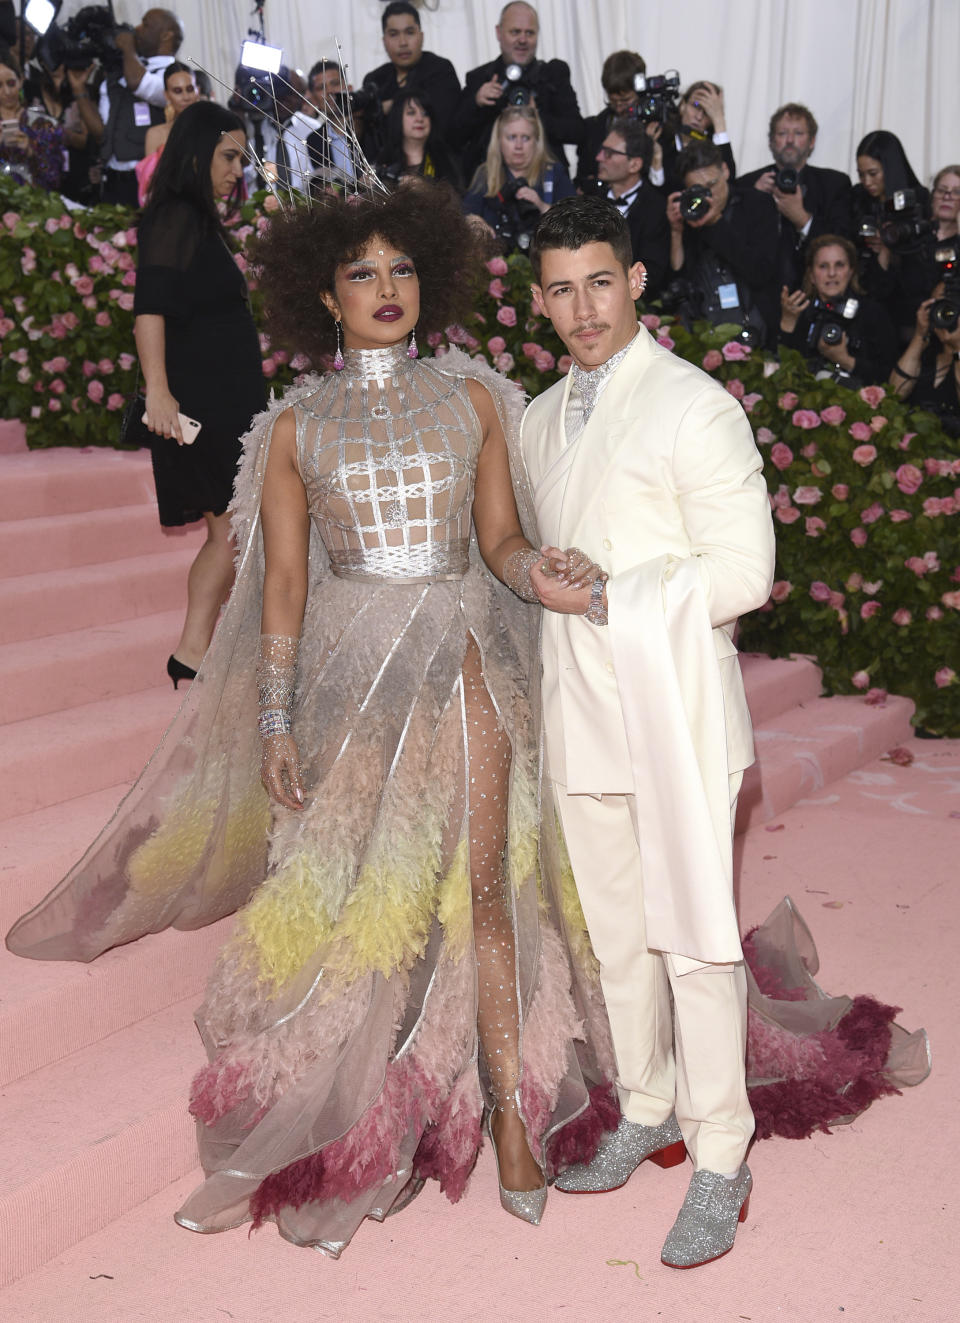 Two years after the 2017 Met Gala, newlyweds Priyanka Chopra and Nick Jonas arrived on Monday night in a pair of regal outfits and matching silver brogues. Photo: Getty Images